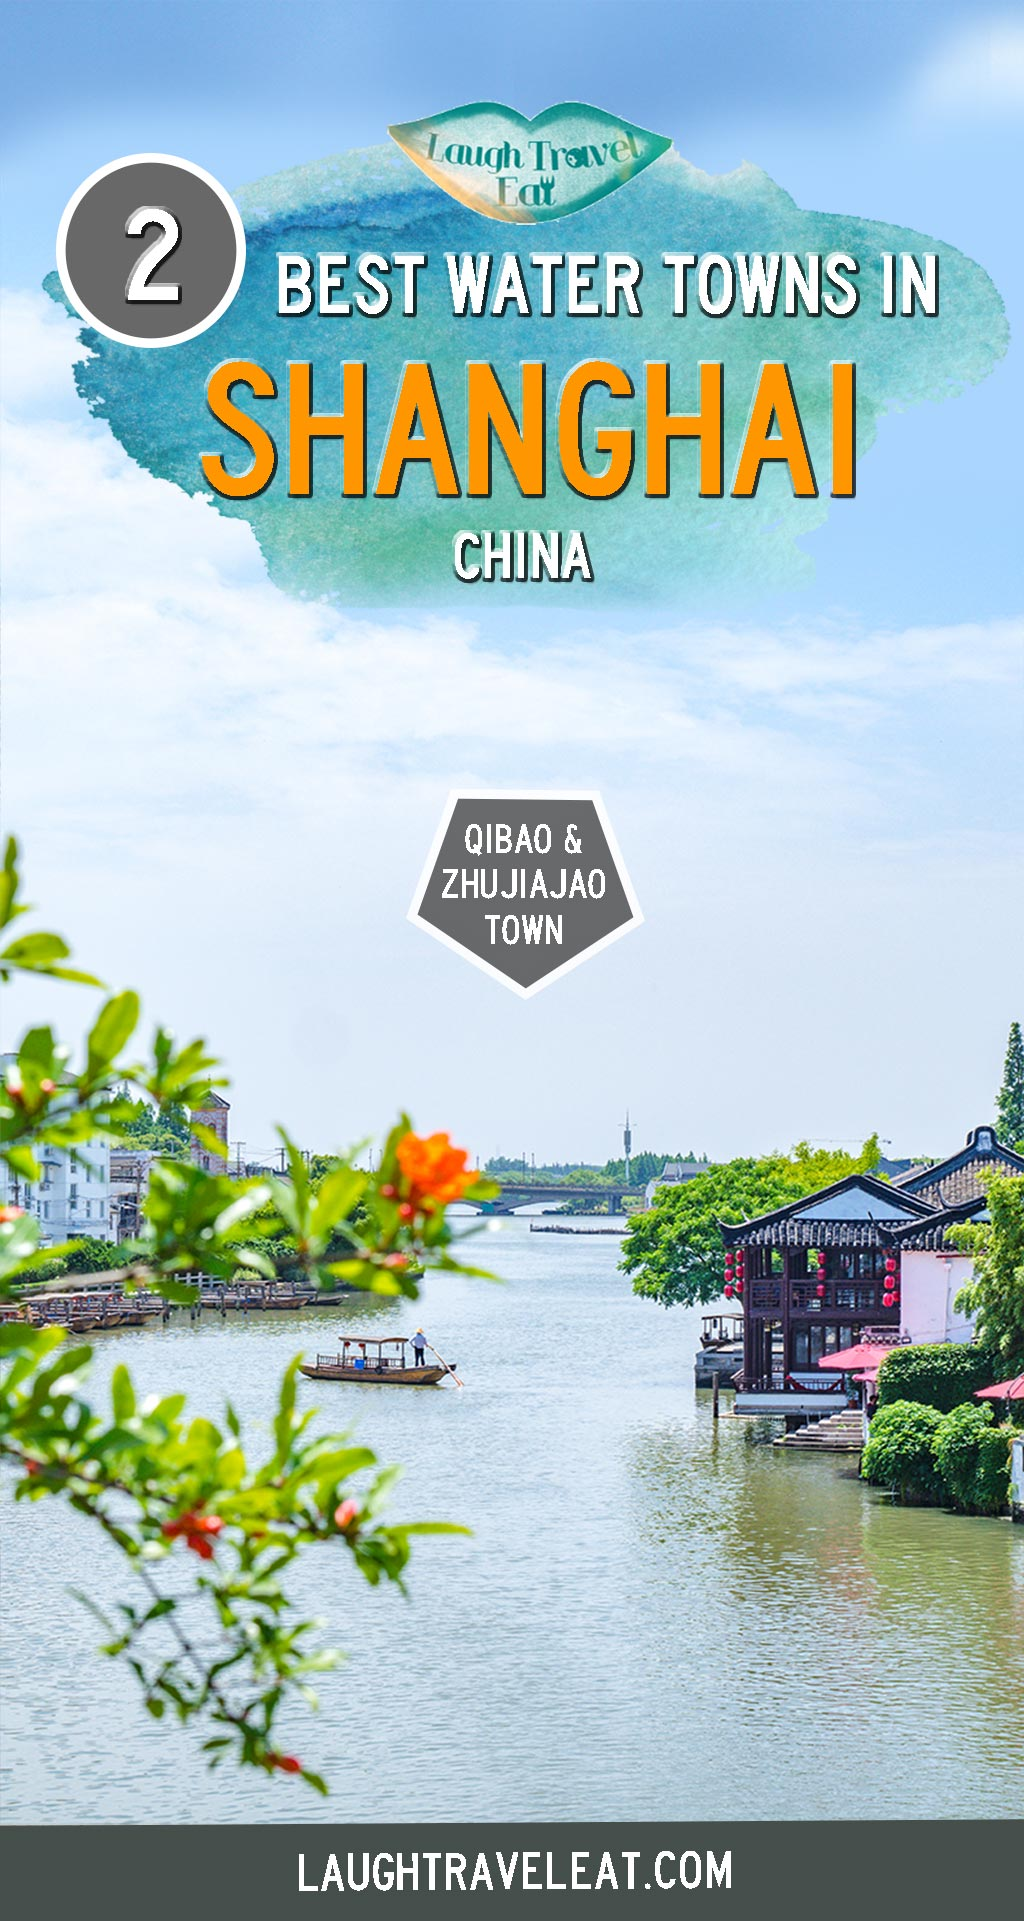 Shanghai was historically an area that flourished from water trade with many water towns. With dozens to choose from, two of the most popular are Zhujiajiao and Qibao. Here's all you need to know about each and how to choose between them: #Shanghai #watertown #China